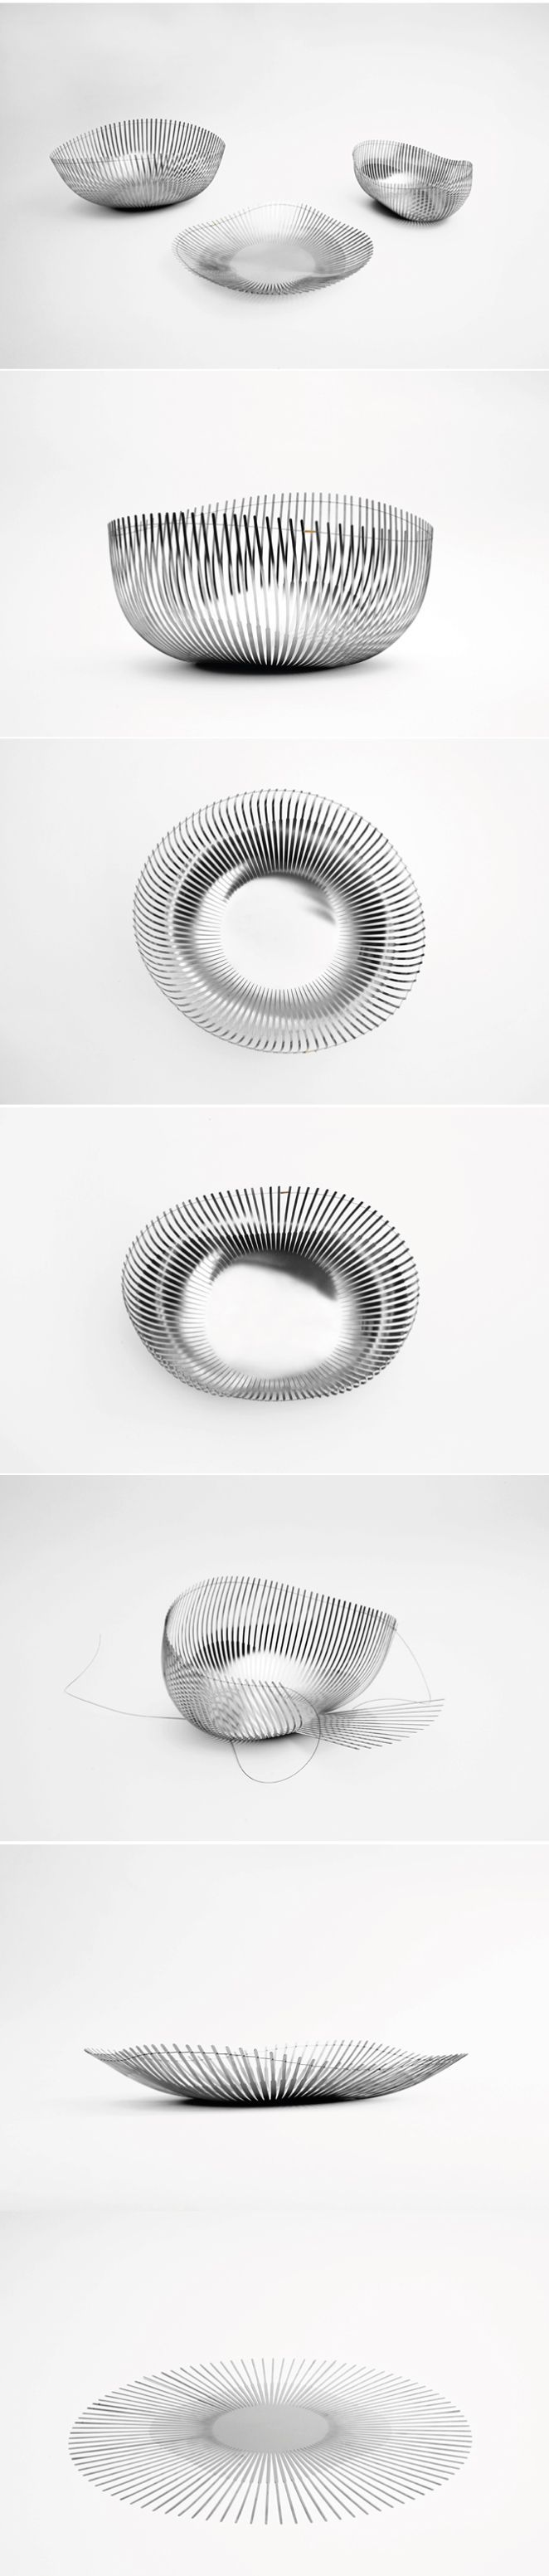 Thalie by Julie Richoz August 28th, 2012  ECAL graduate Julie Richoz has made a series of containers made out of flat sheets of cut spring steel. The collection comprises a plate, a fruit bowl and a bread basket, all made using a process inspired by crochet and knitting.